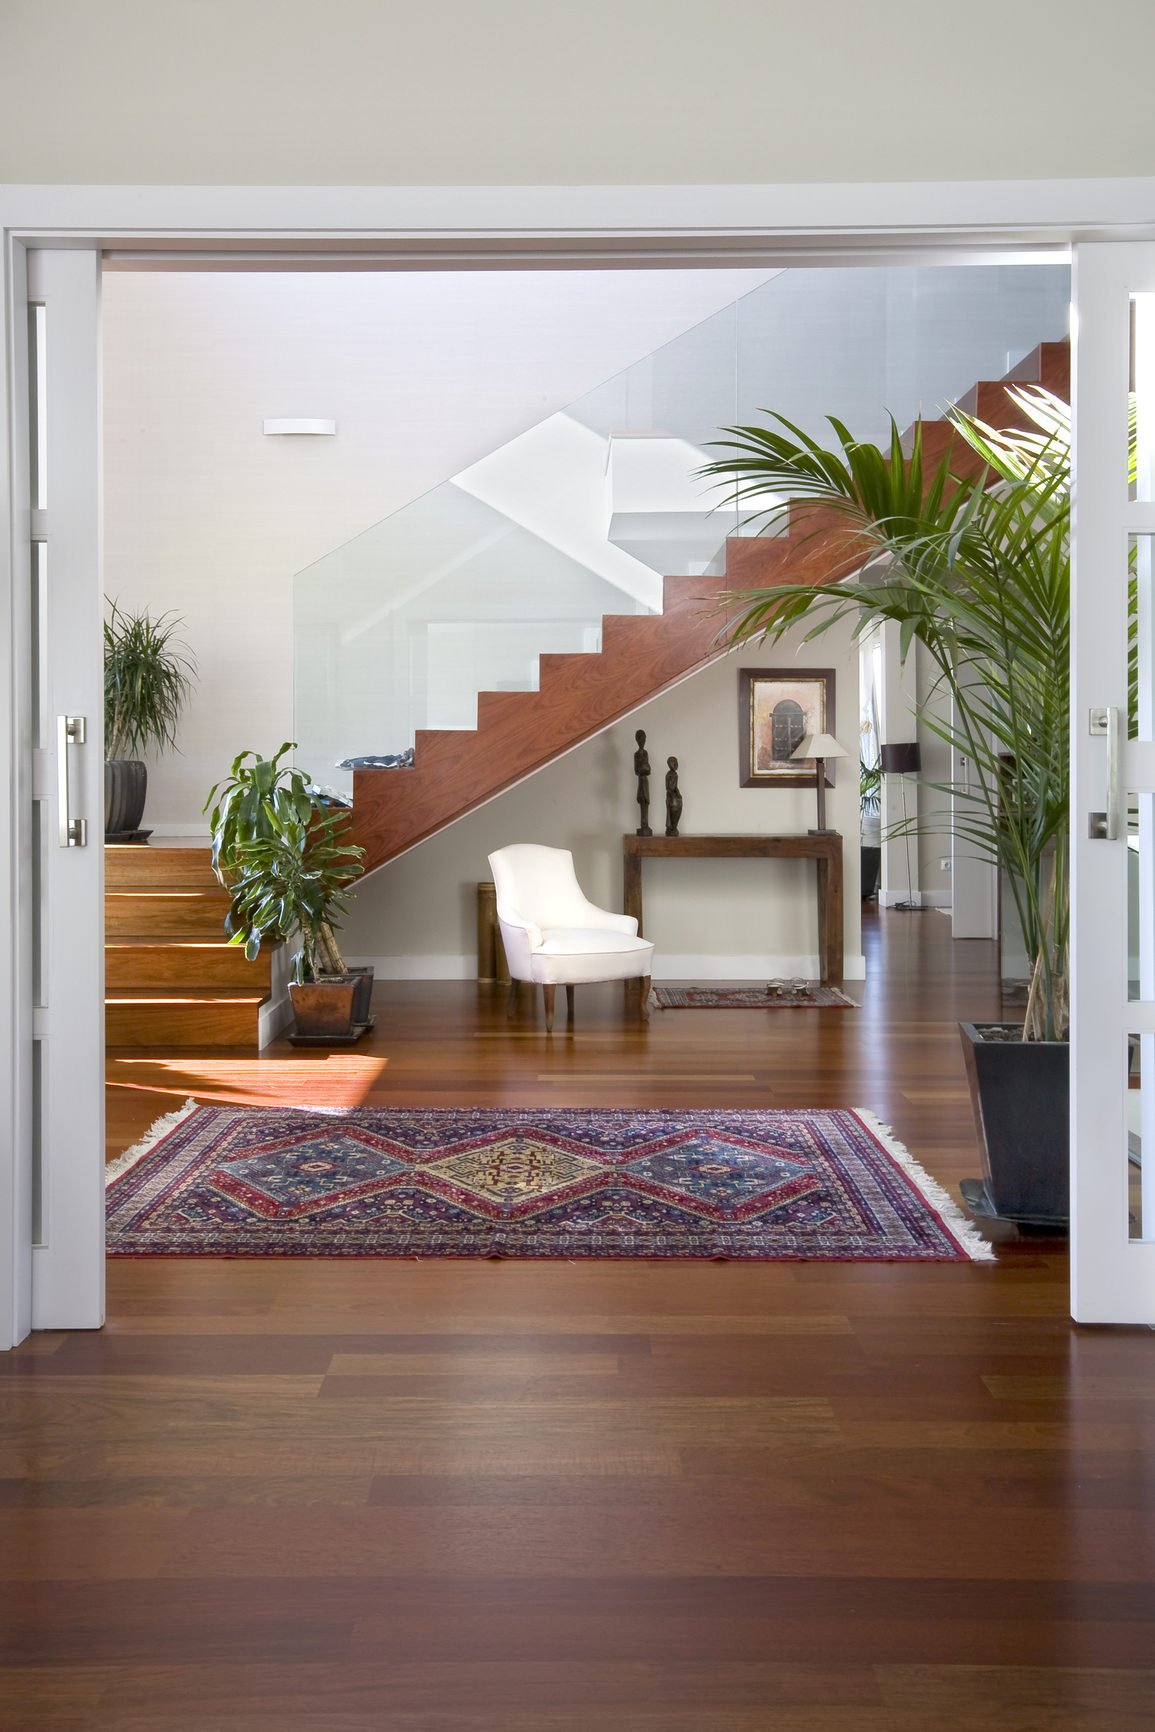 This foyer features a hardwood flooring and white walls. The white chair looks charming.